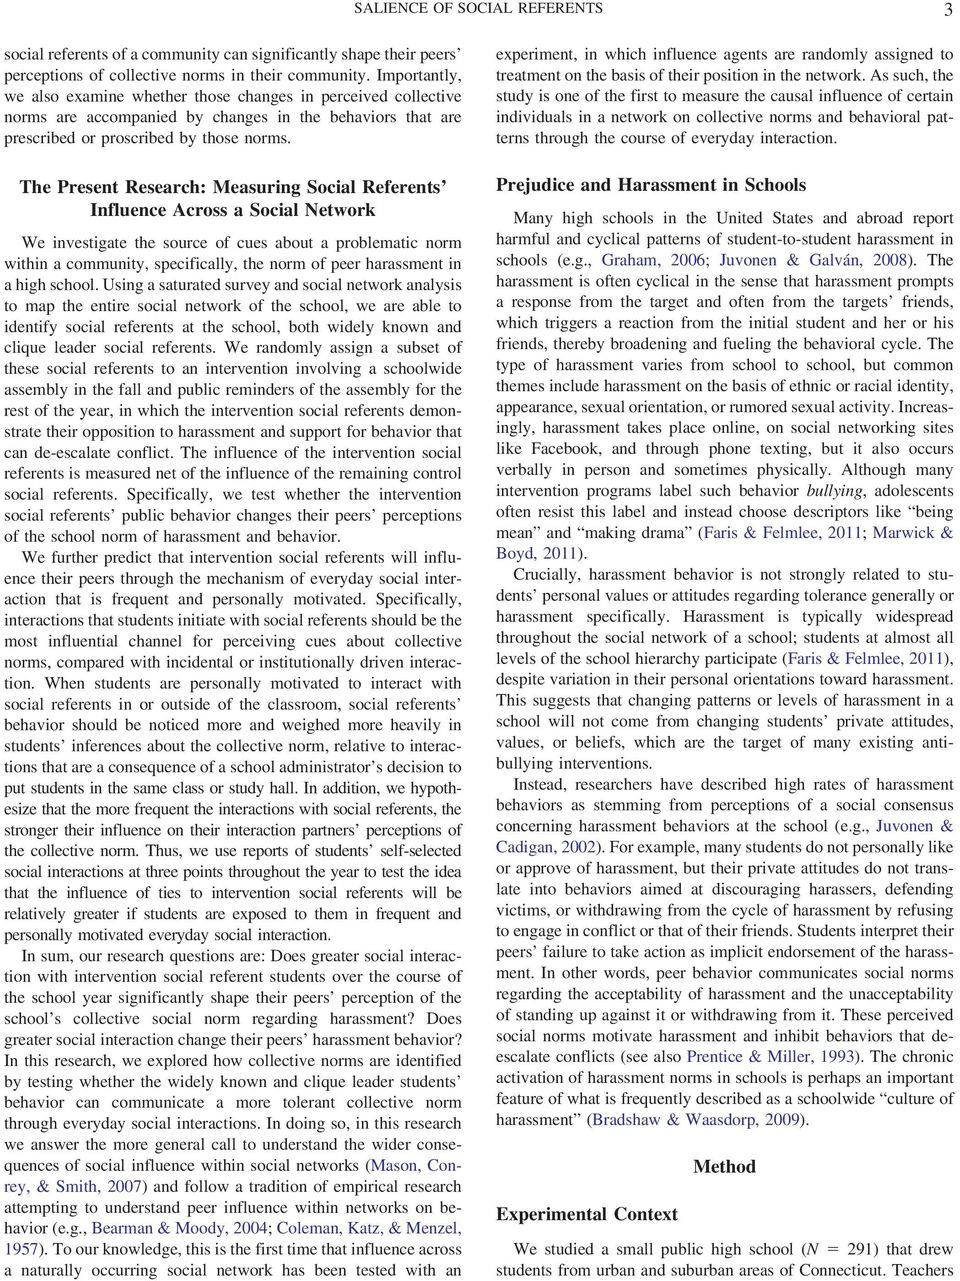 The Present Research: Measuring Social Referents Influence Across a Social Network We investigate the source of cues about a problematic norm within a community, specifically, the norm of peer